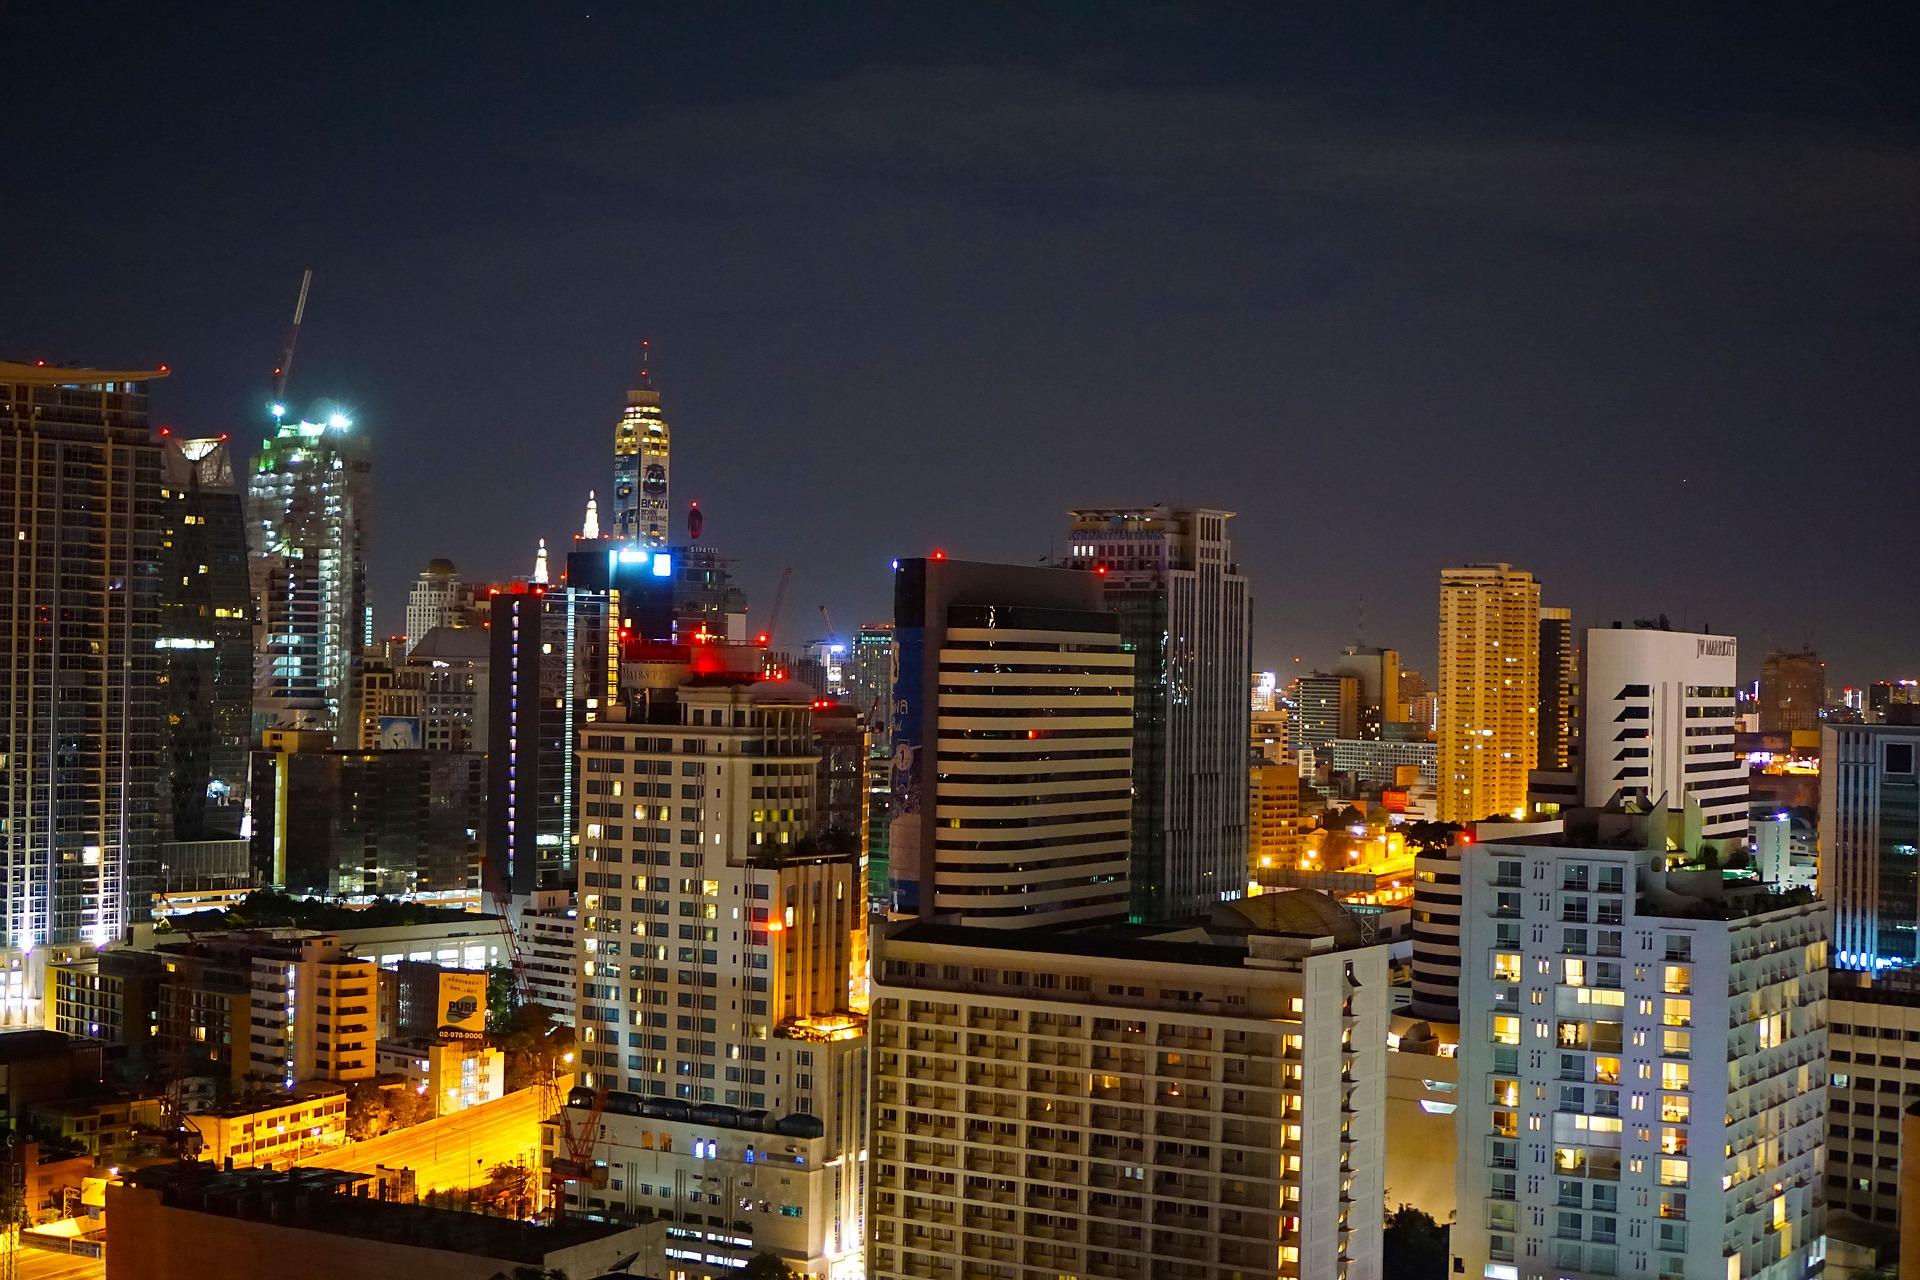 Bangkok, Thailand at night